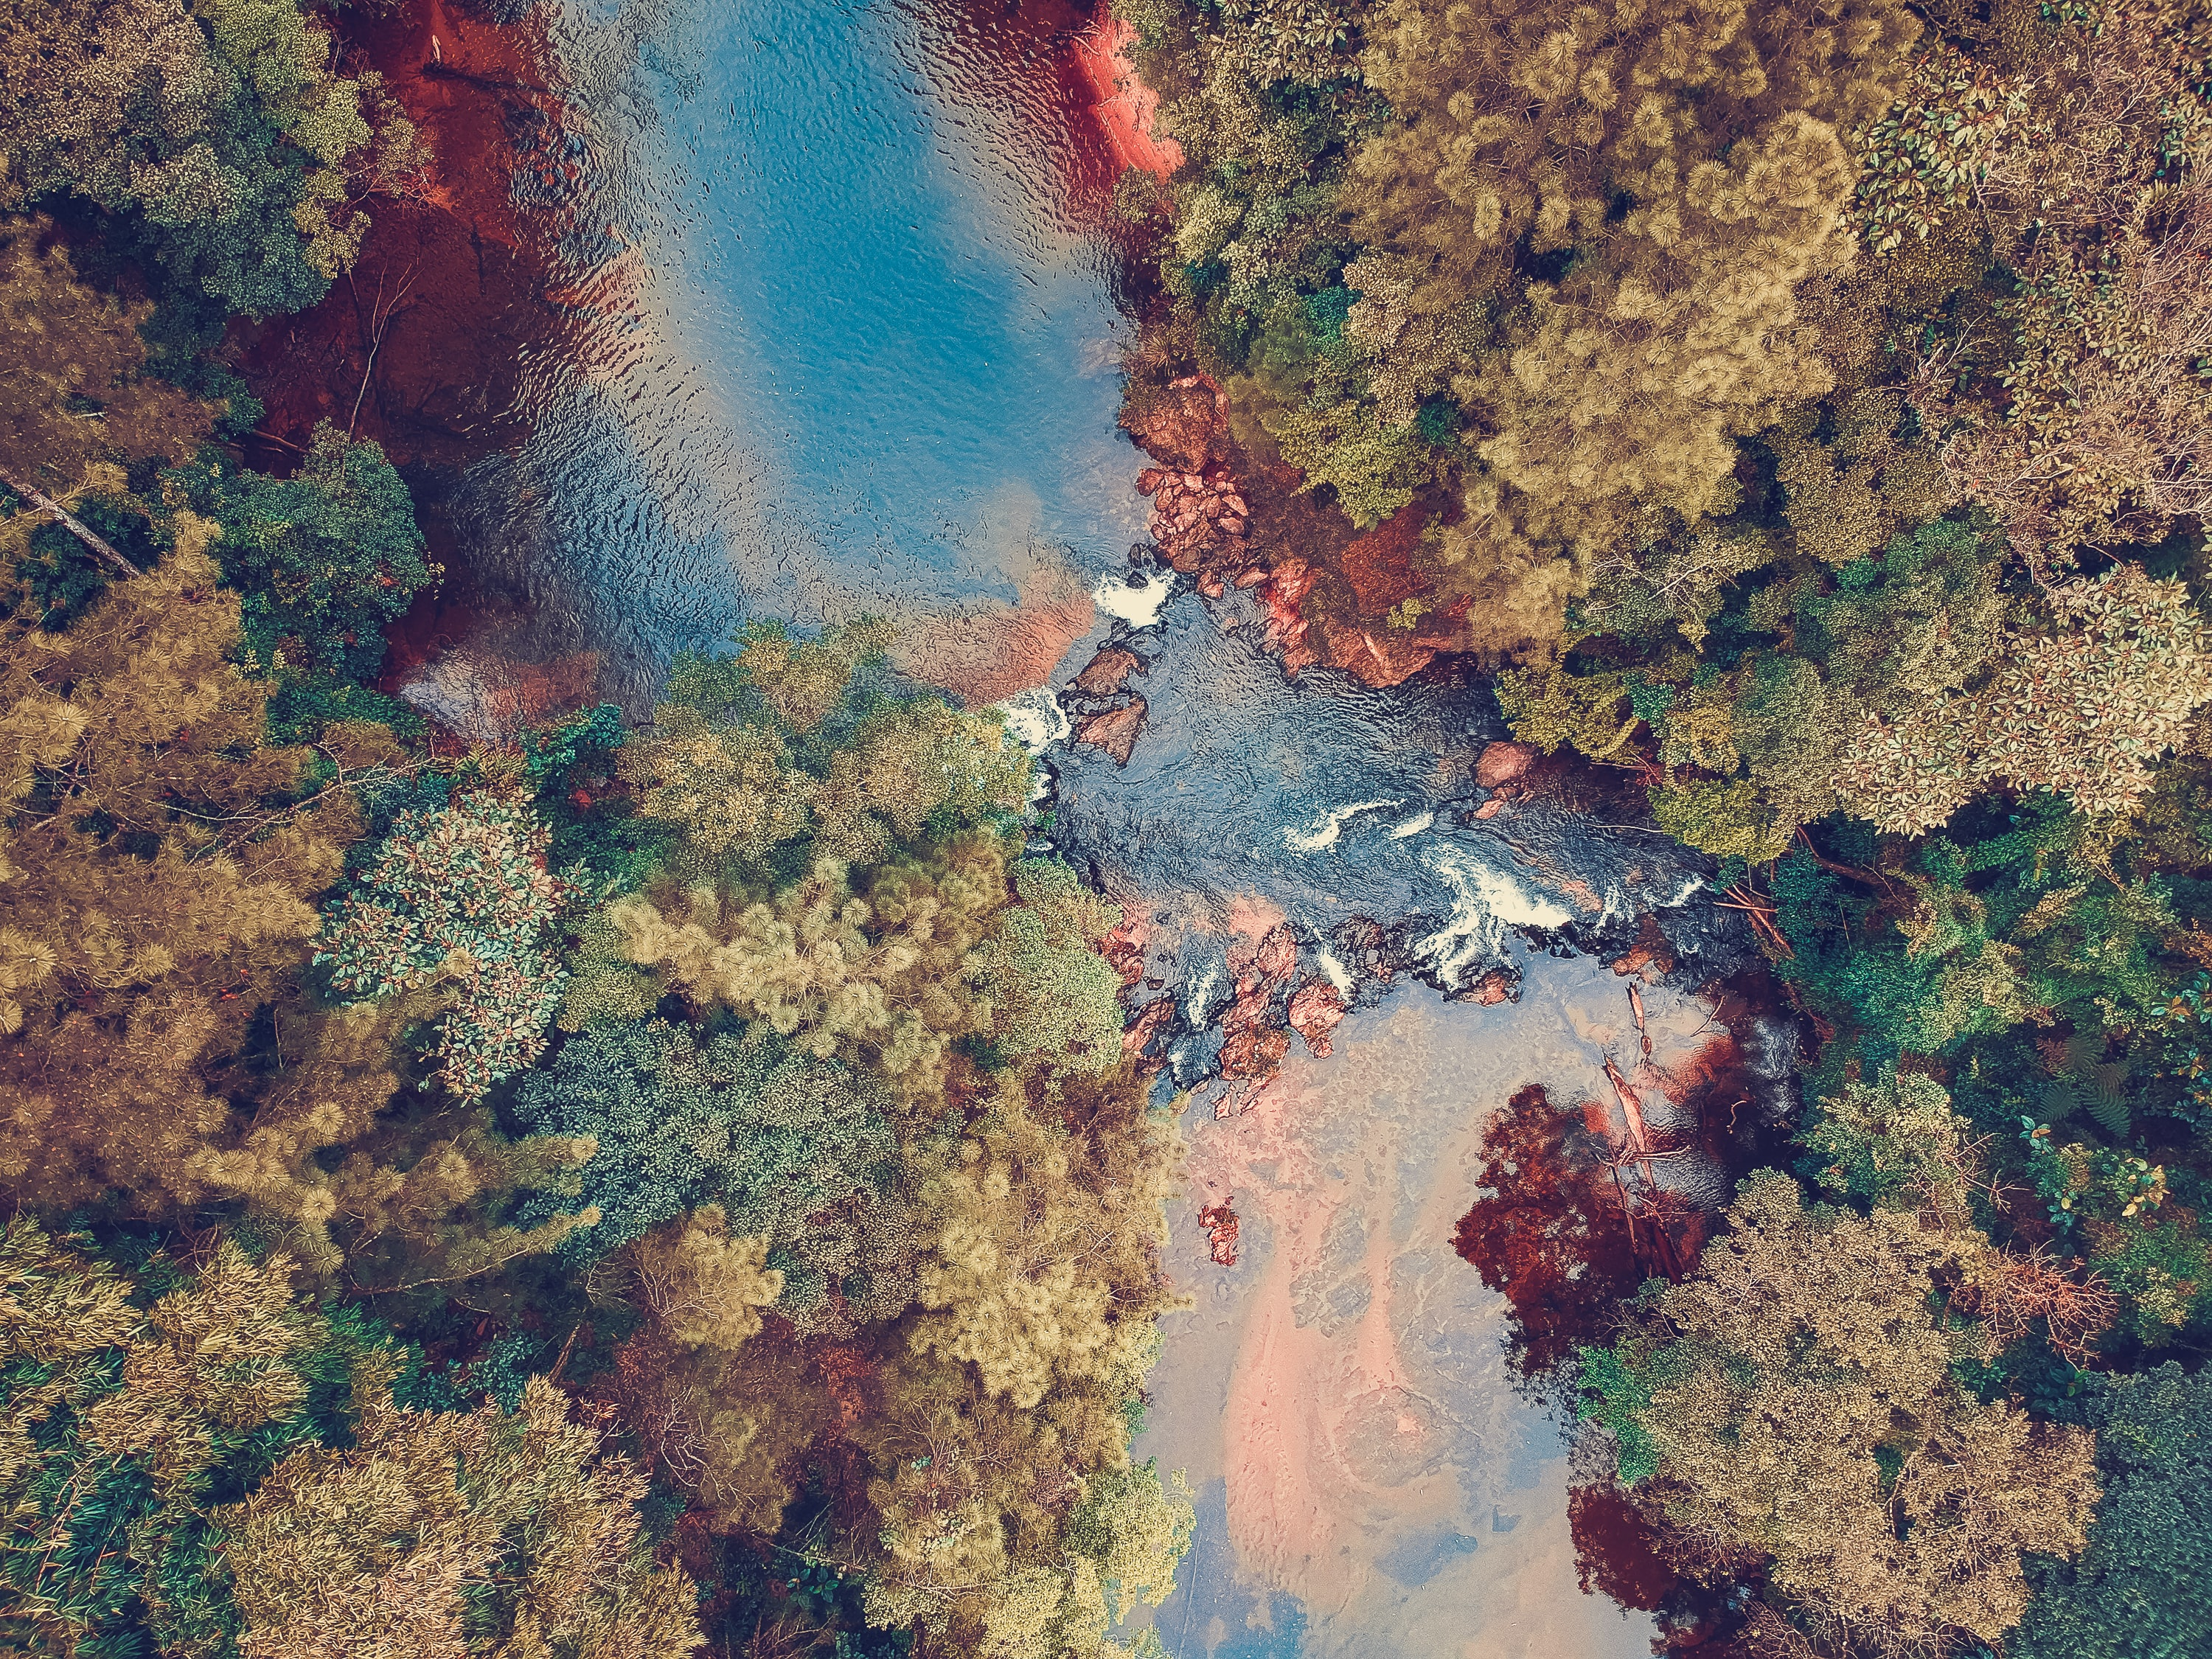 aerial photo of river between trees